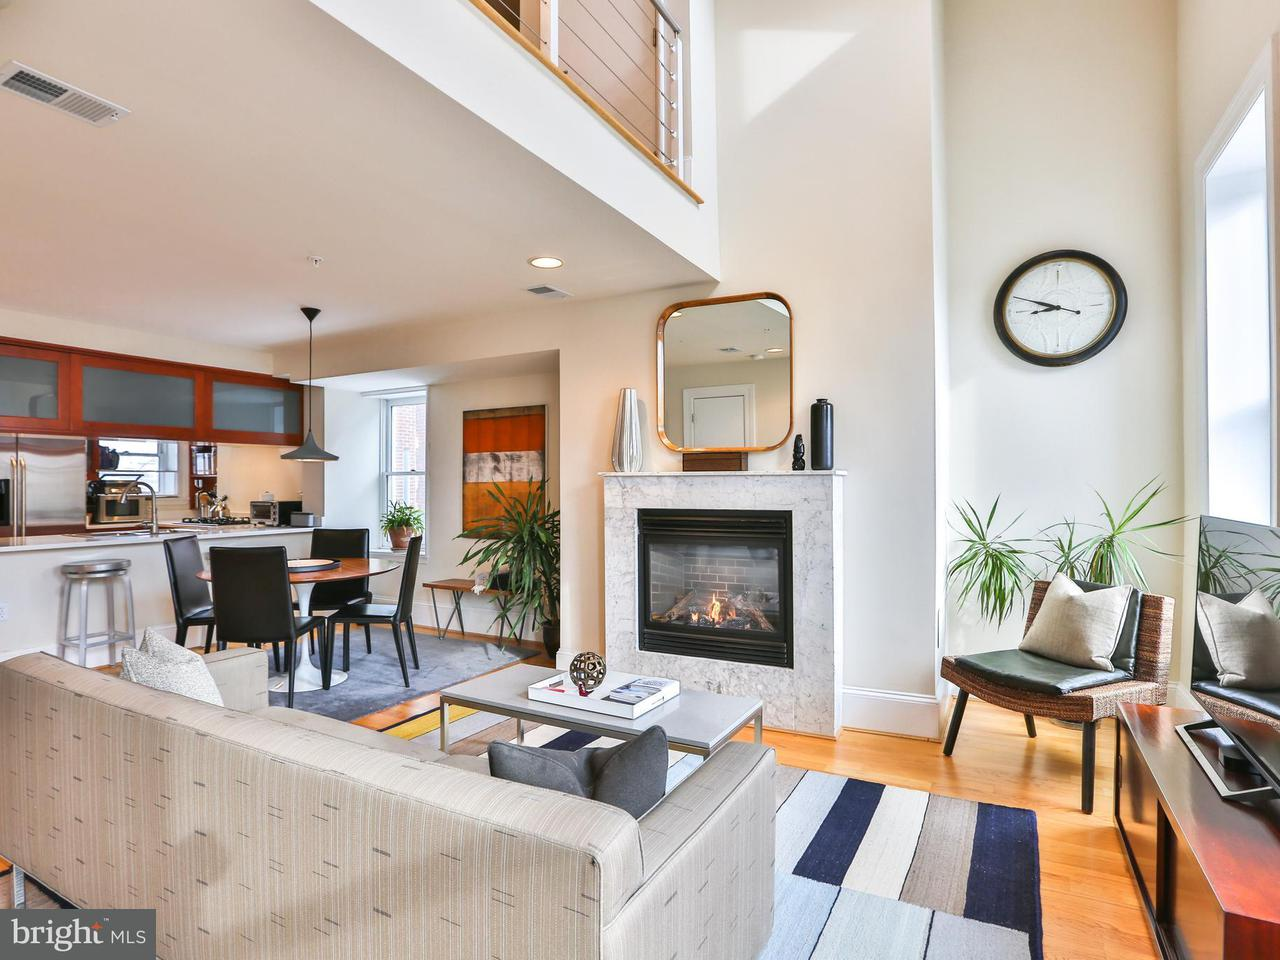 Townhouse for Sale at 1321 R St Nw #4 1321 R St Nw #4 Washington, District Of Columbia 20009 United States